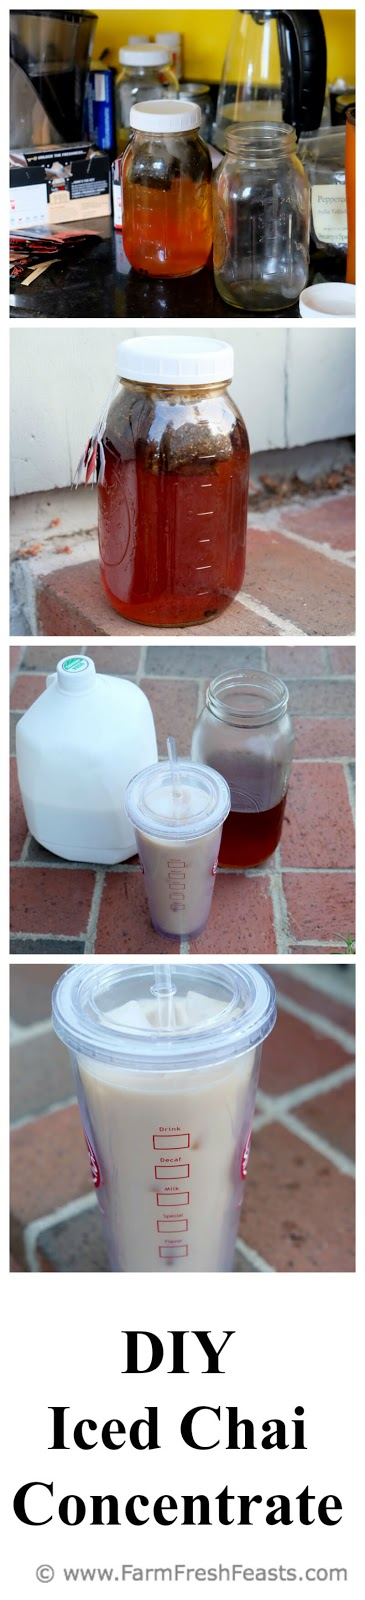 http://www.farmfreshfeasts.com/2015/06/dos-and-donts-of-diy-iced-chai-tea.html www.farmfreshfeasts.com